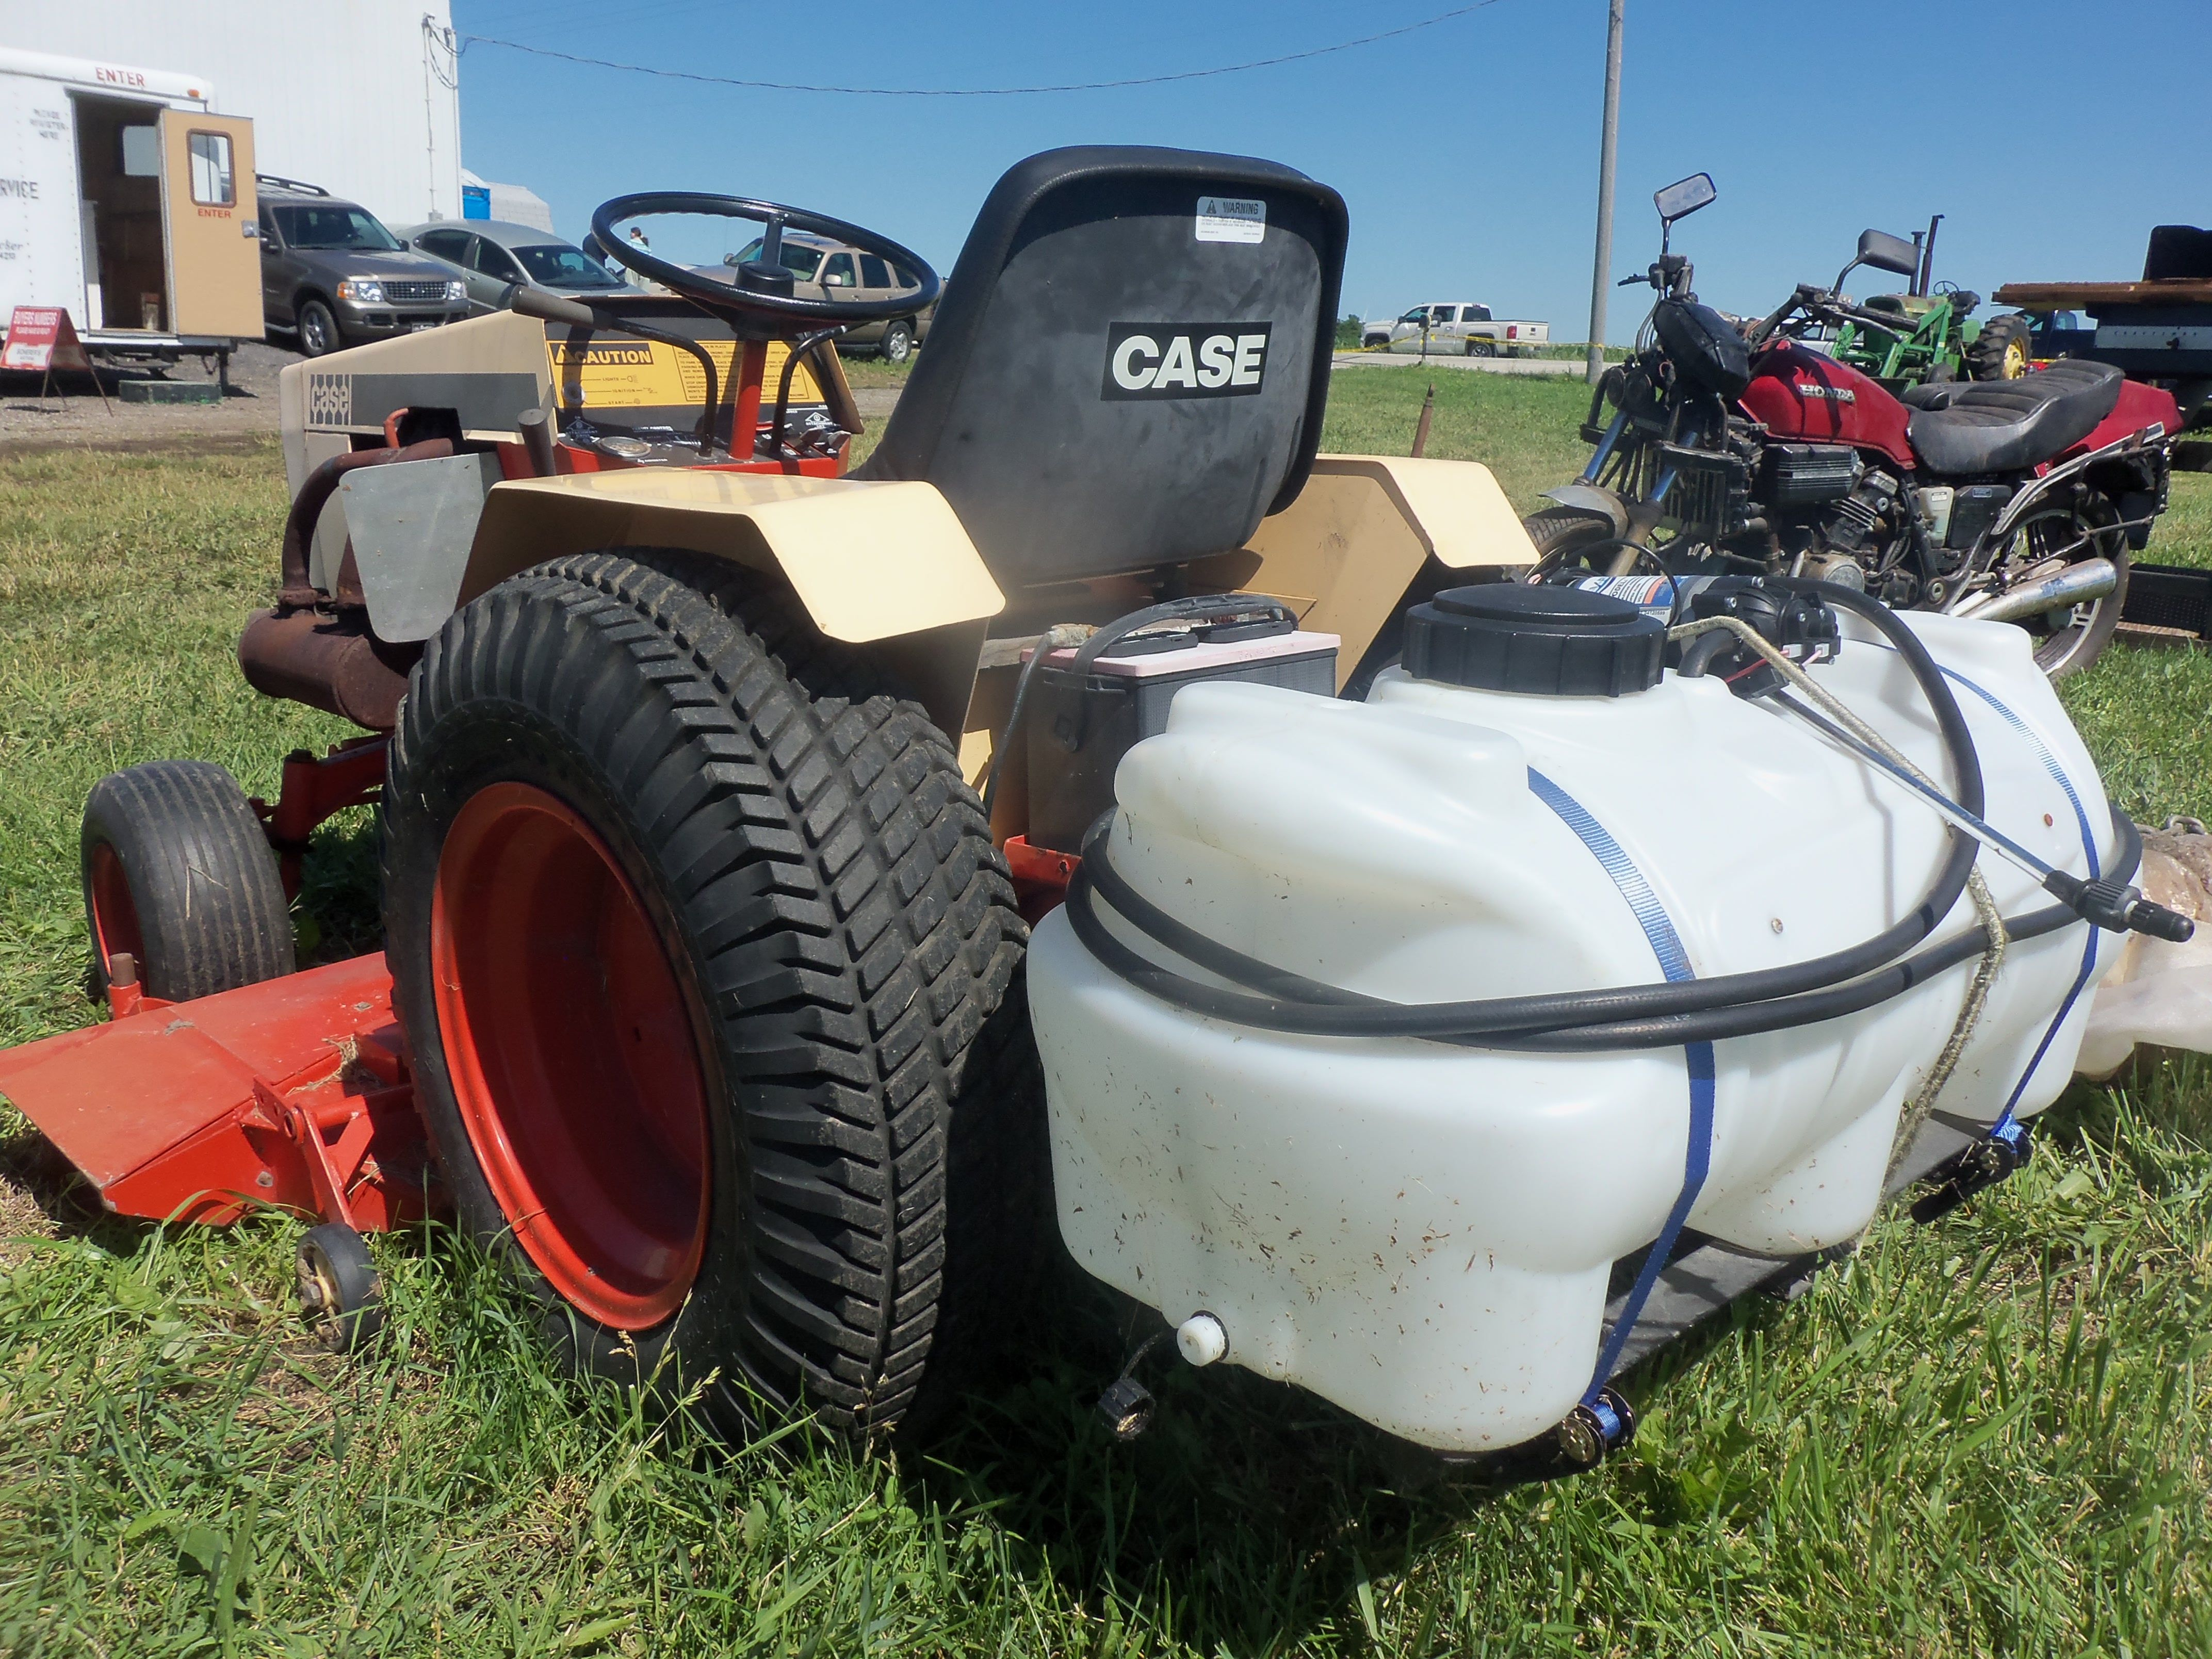 Case 444 Lawn Garden Parts Manuals Ingersoll 446 Wiring Diagram Rear Of Tractor J I Equipment Rh Pinterest Com Manual Vintage Tractors